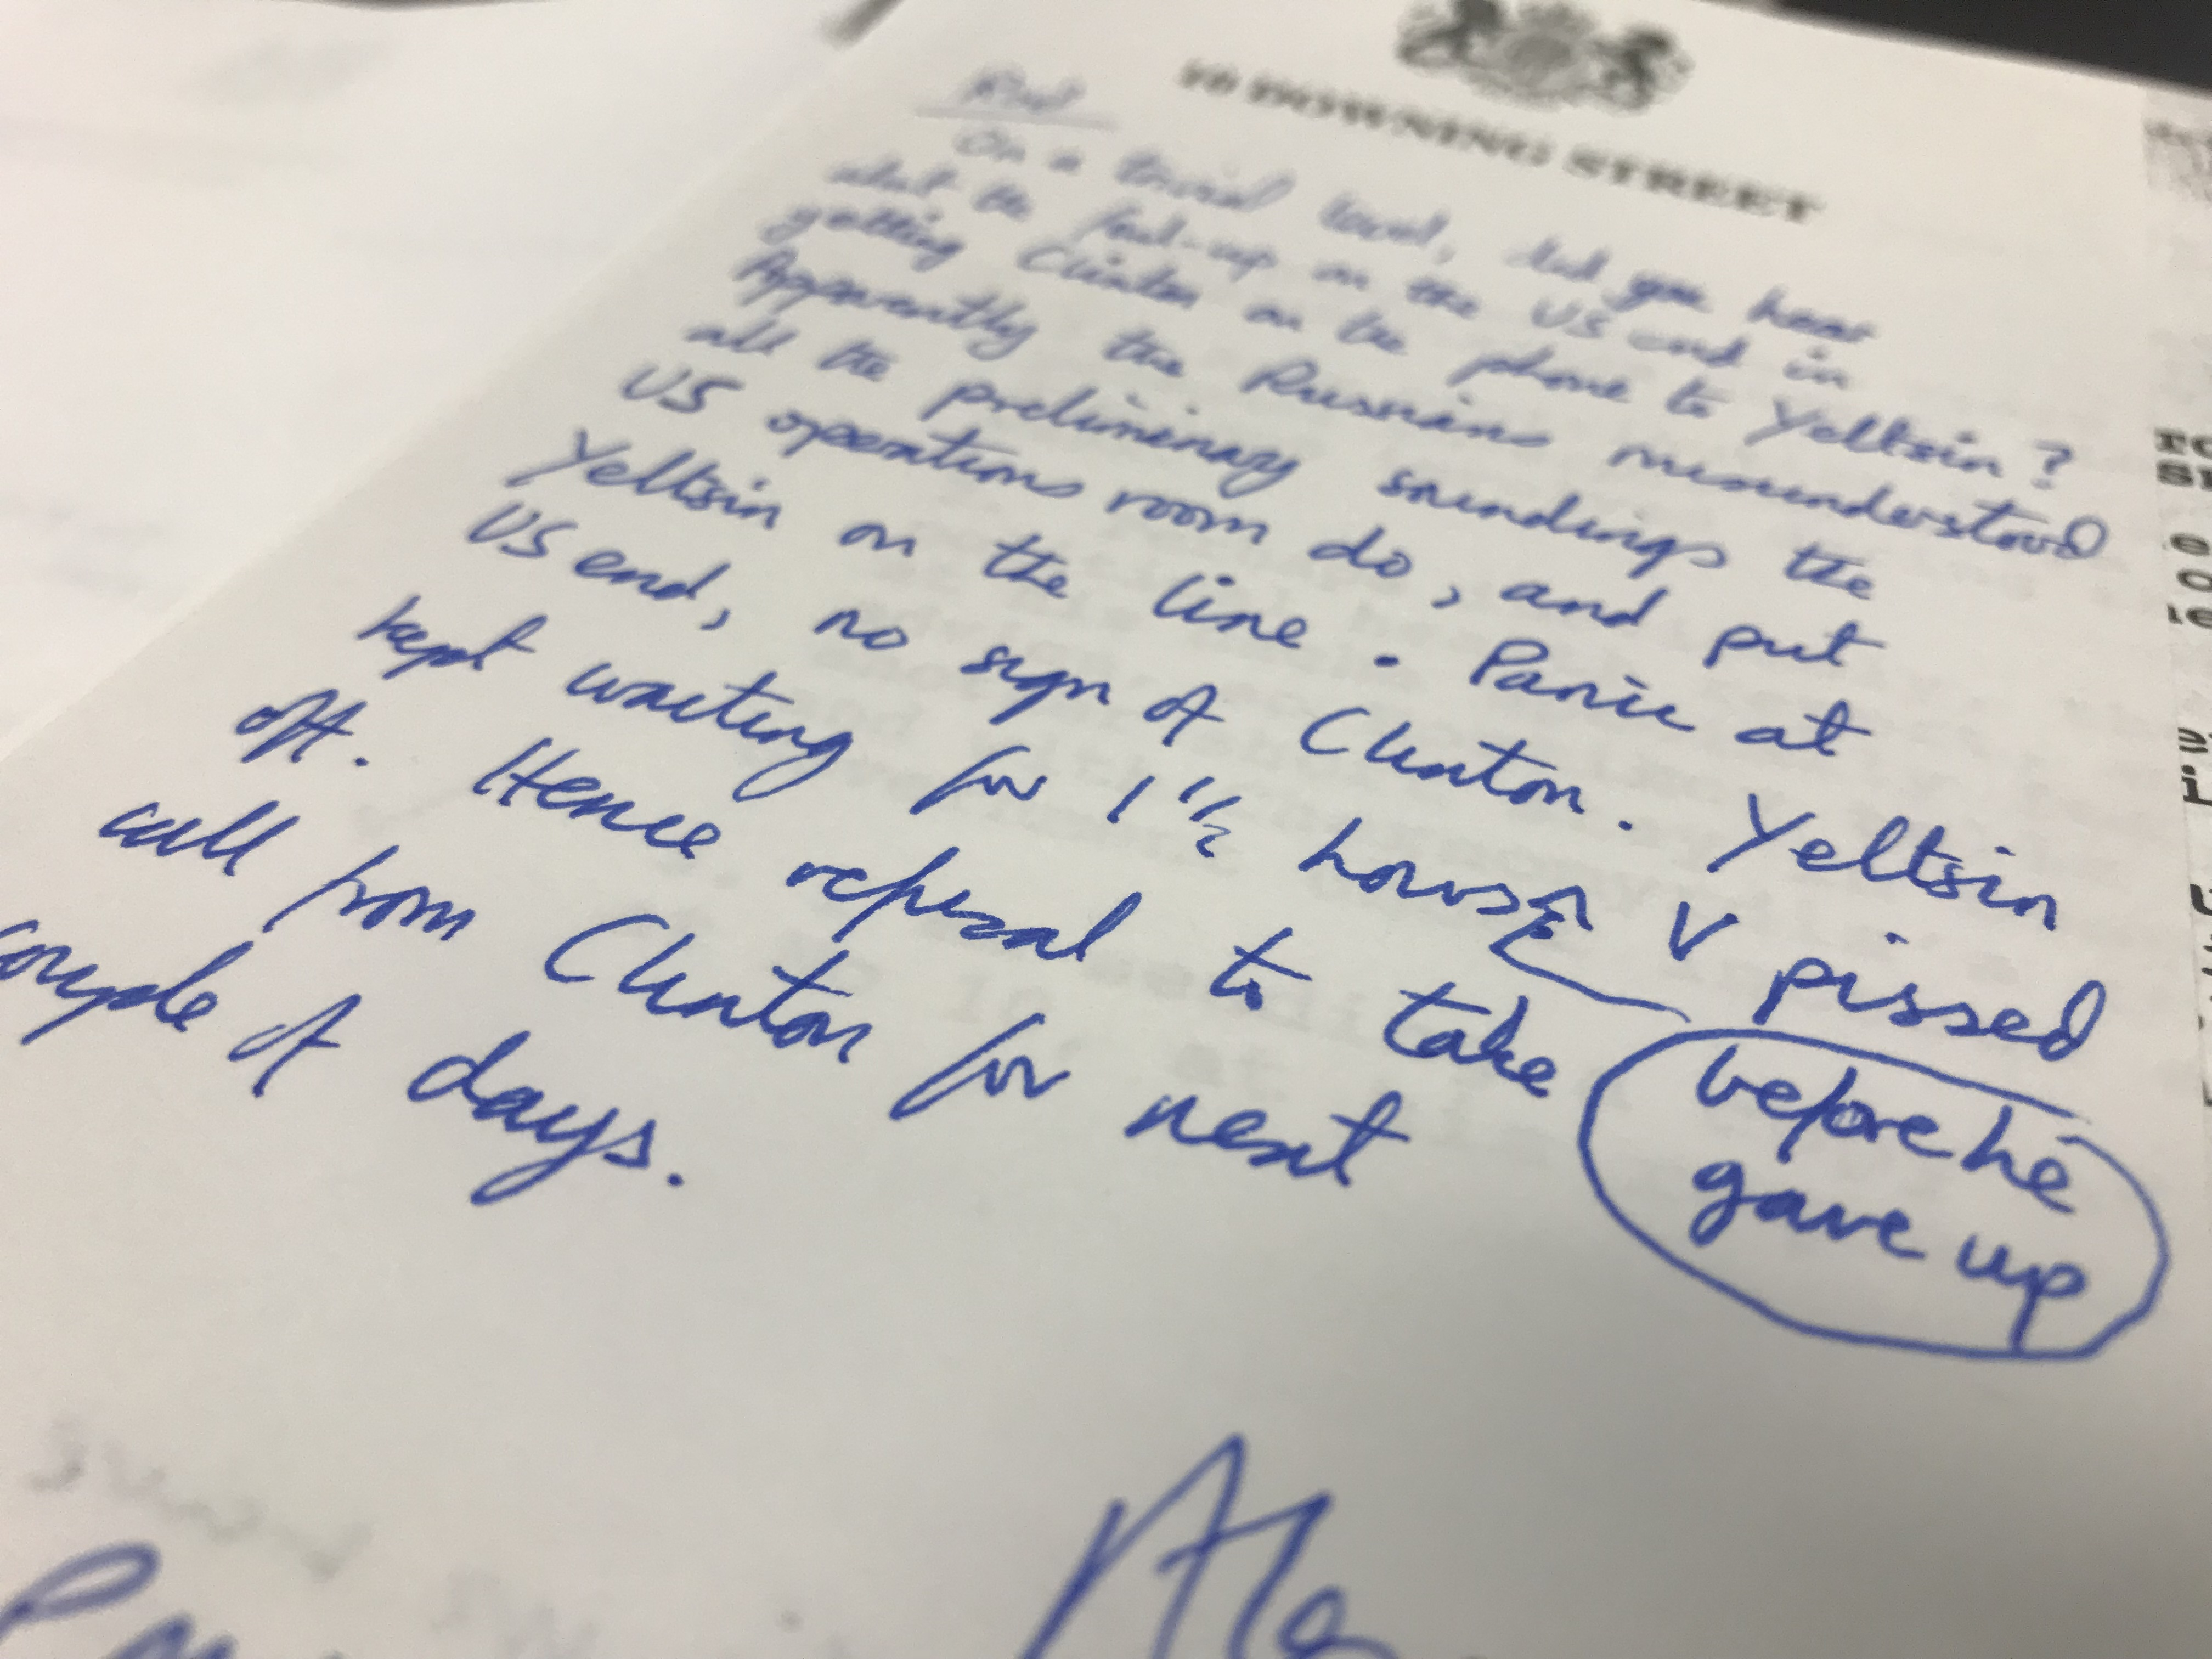 A handwritten note on Downing Street paper reveal how Boris Yeltsin was kept on hold for 90 minutes to Bill Clinton in 1994. Picture: National Archives / Ryan Hooper